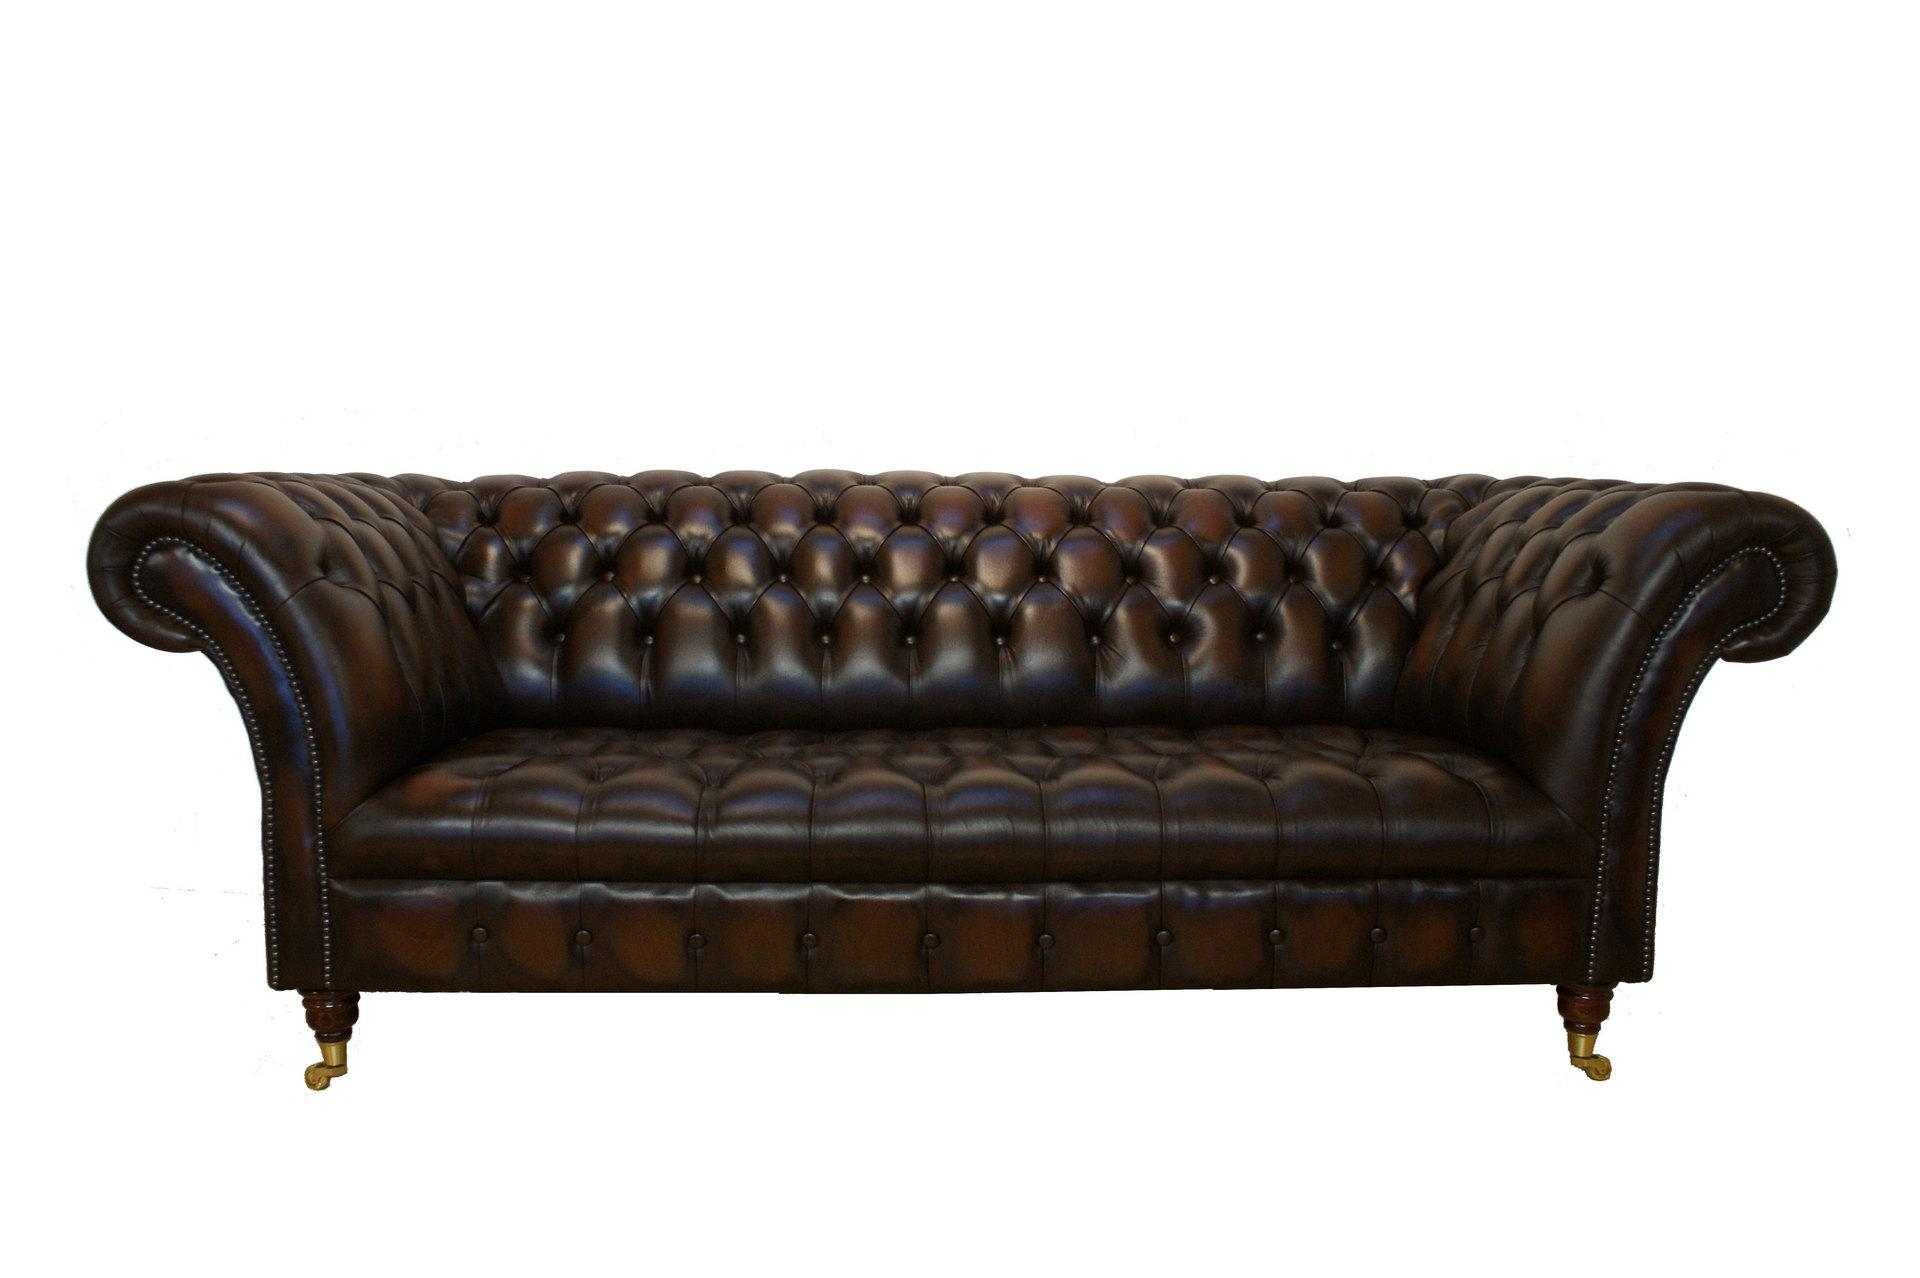 Furniture: Fabulous Chesterfield Sofa Craigslist Furniture For With Craigslist Chesterfield Sofas (View 3 of 20)